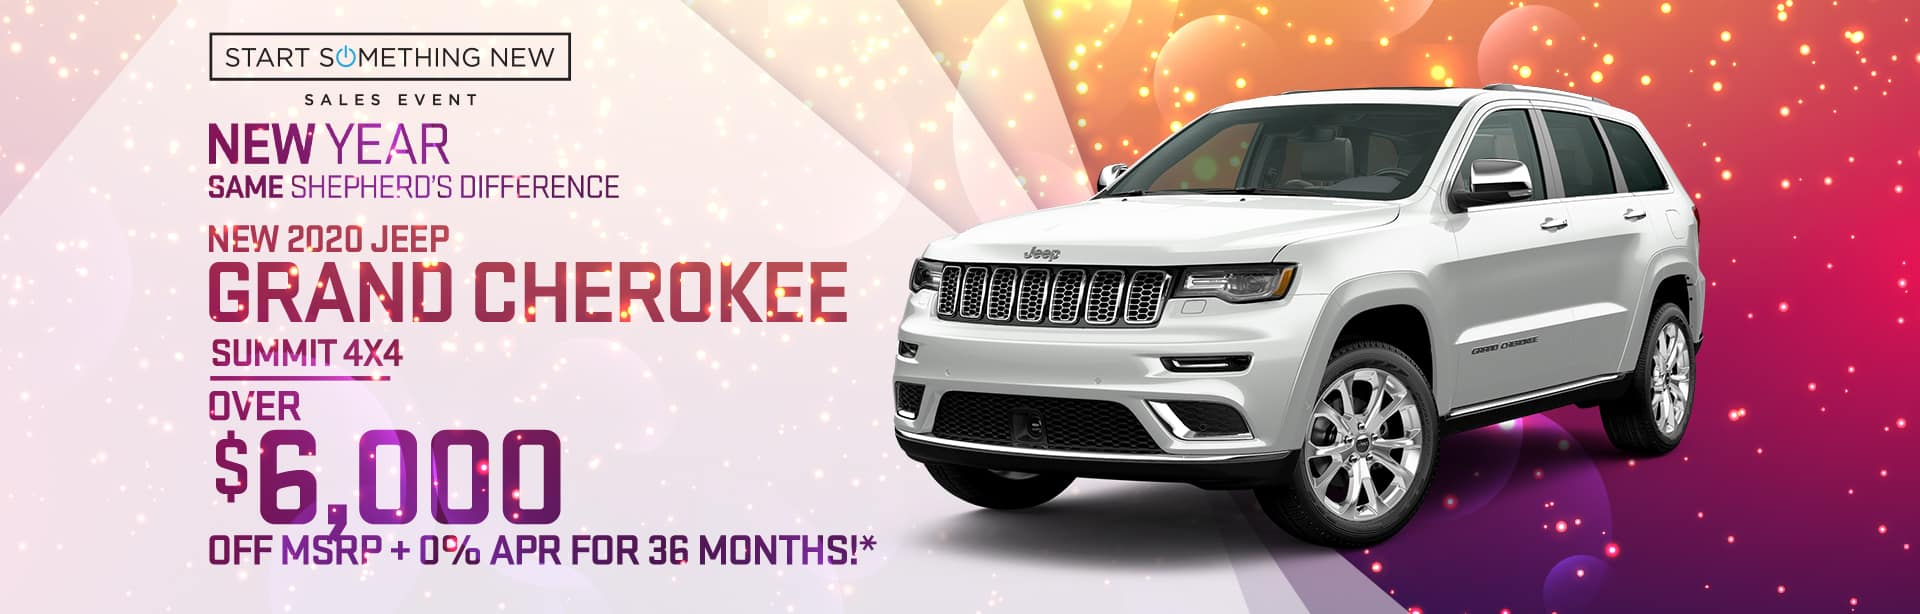 Best Deal on a New Jeep Grand Cherokee near Defiance, Indiana